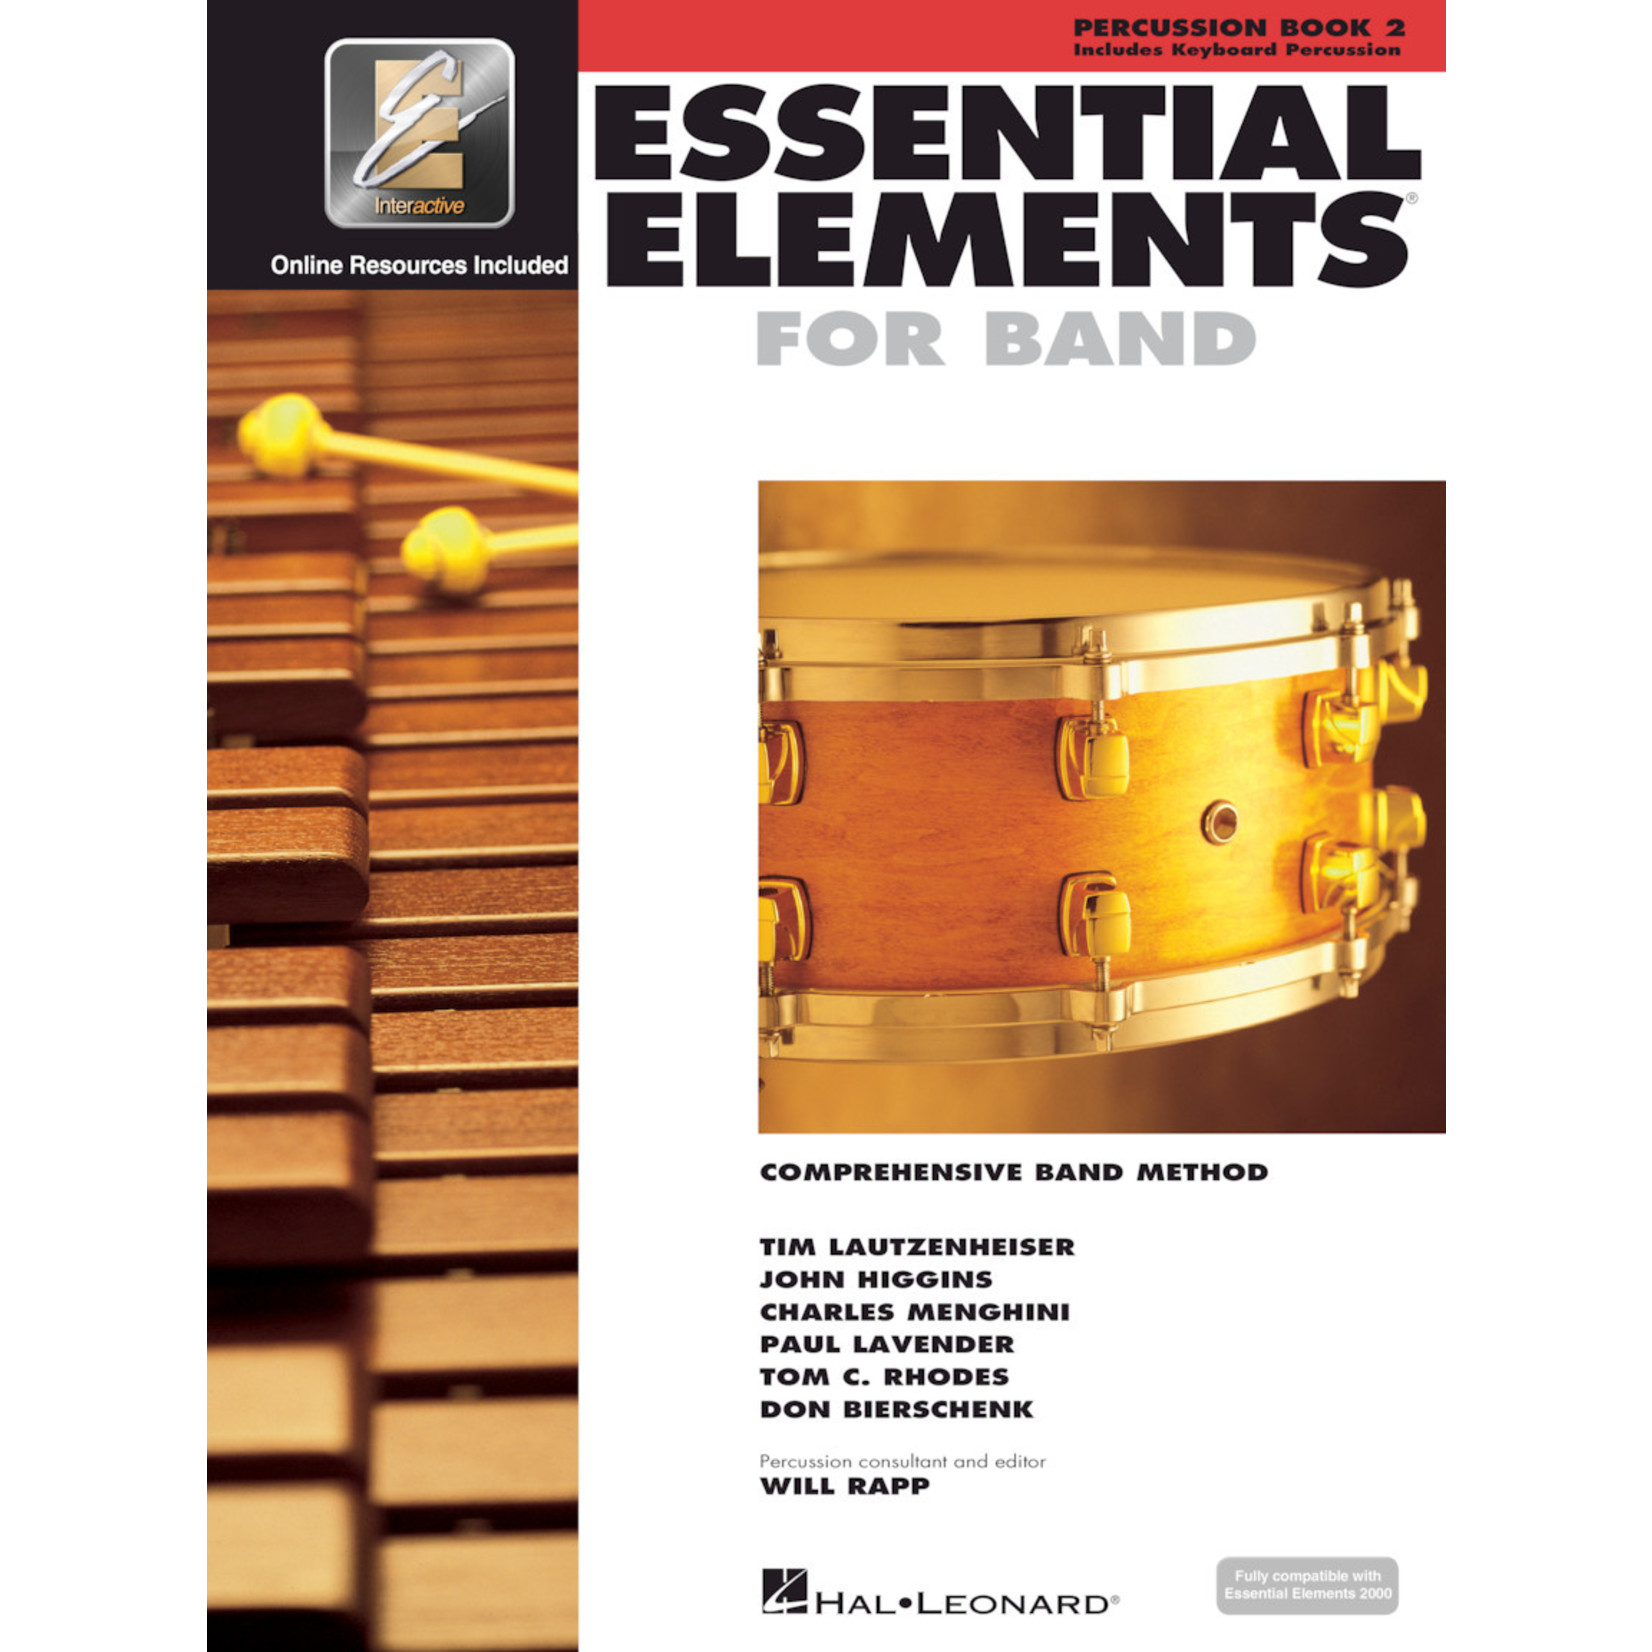 Hal Leonard Essential Elements for Band Percussion Book 2